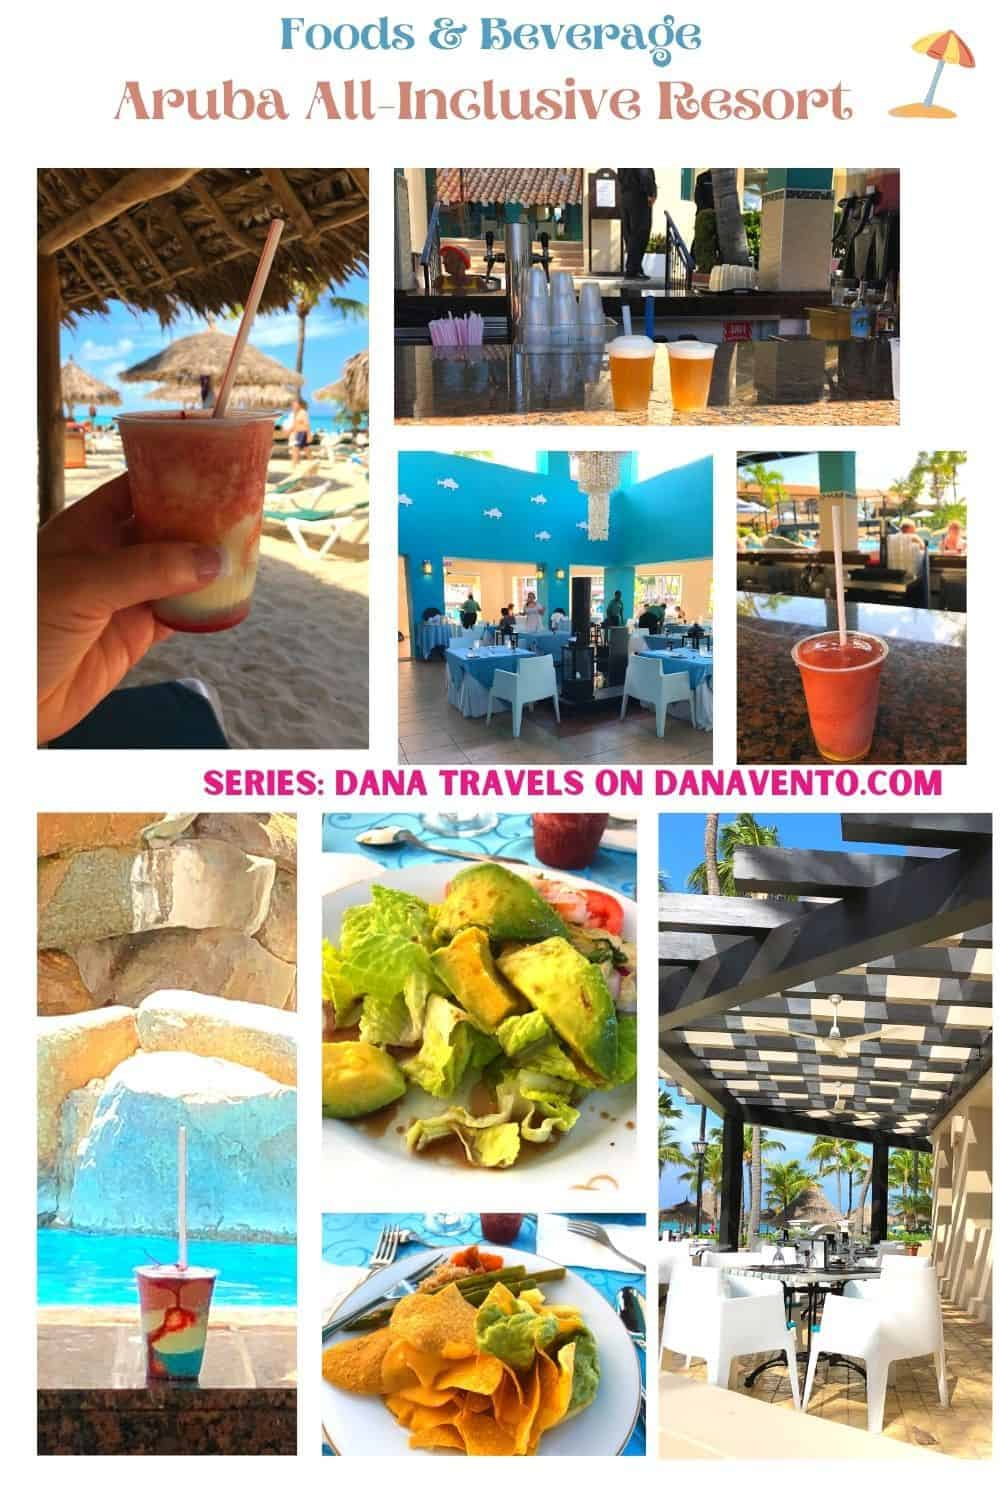 Foods Beverages at All Inclusive Aruba Resort on Palm Beach